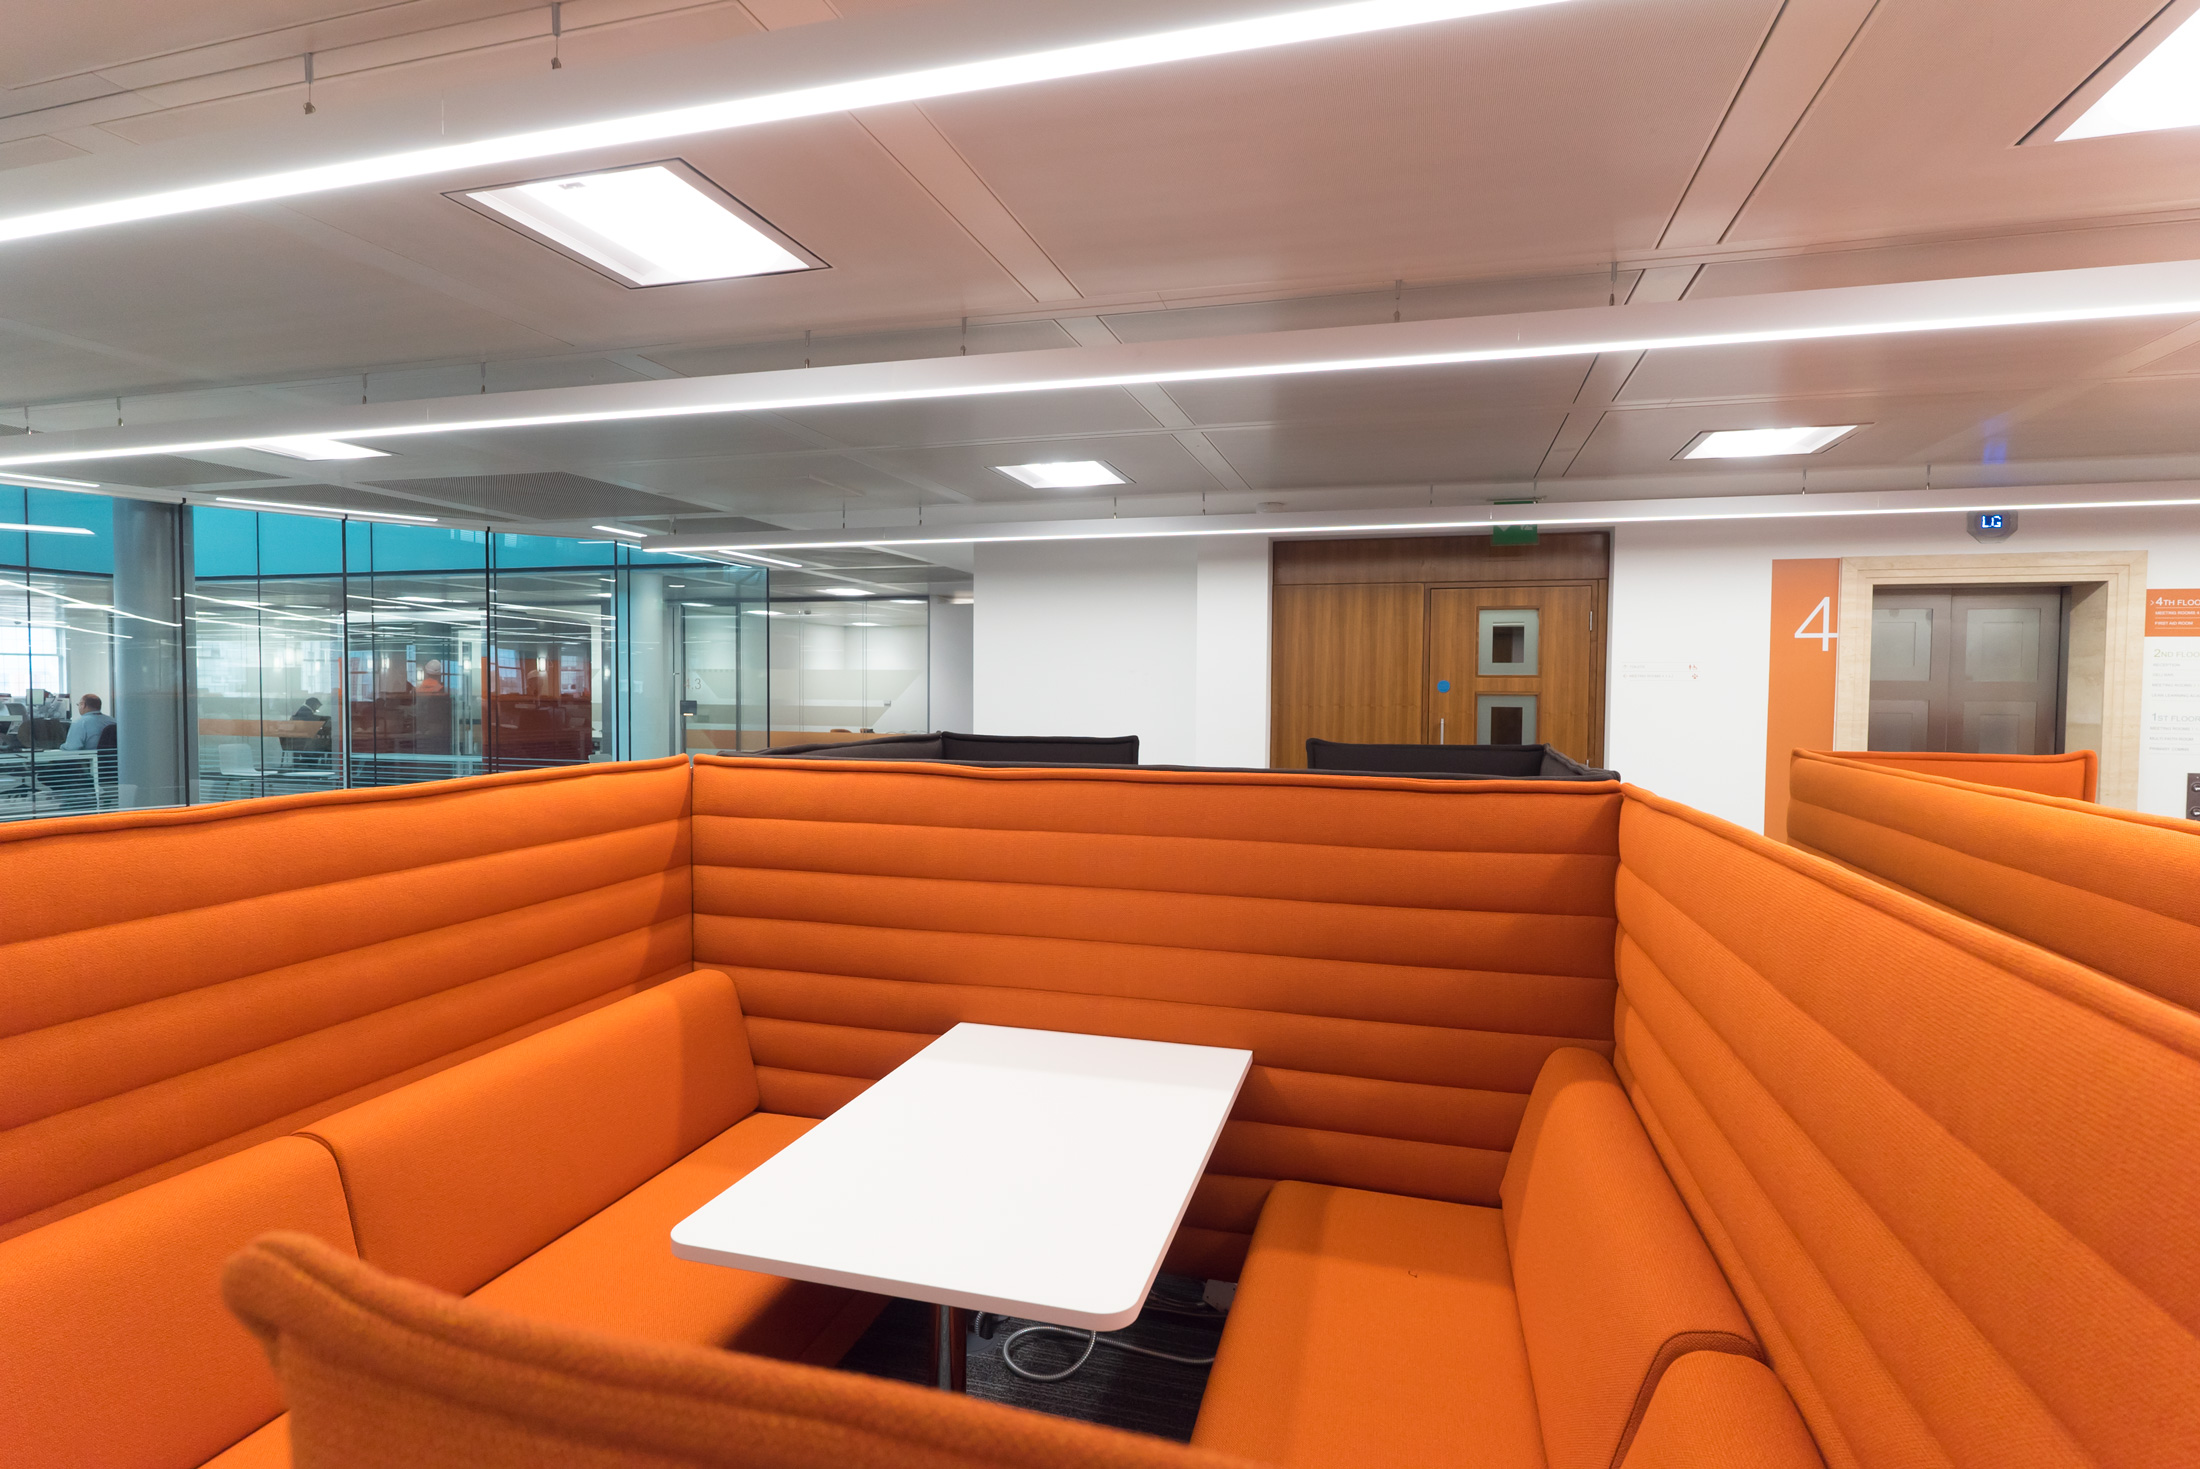 THE BREAKOUT SPACES. - For the breakout spaces, the circular suspended fitting Talla was used in combination with the soft square suspended profile Tarras, bringing a visual interest into space and creating an area with a different light distribution. All lighting was supplied in white colour to enhance the contemporary feel of the building.